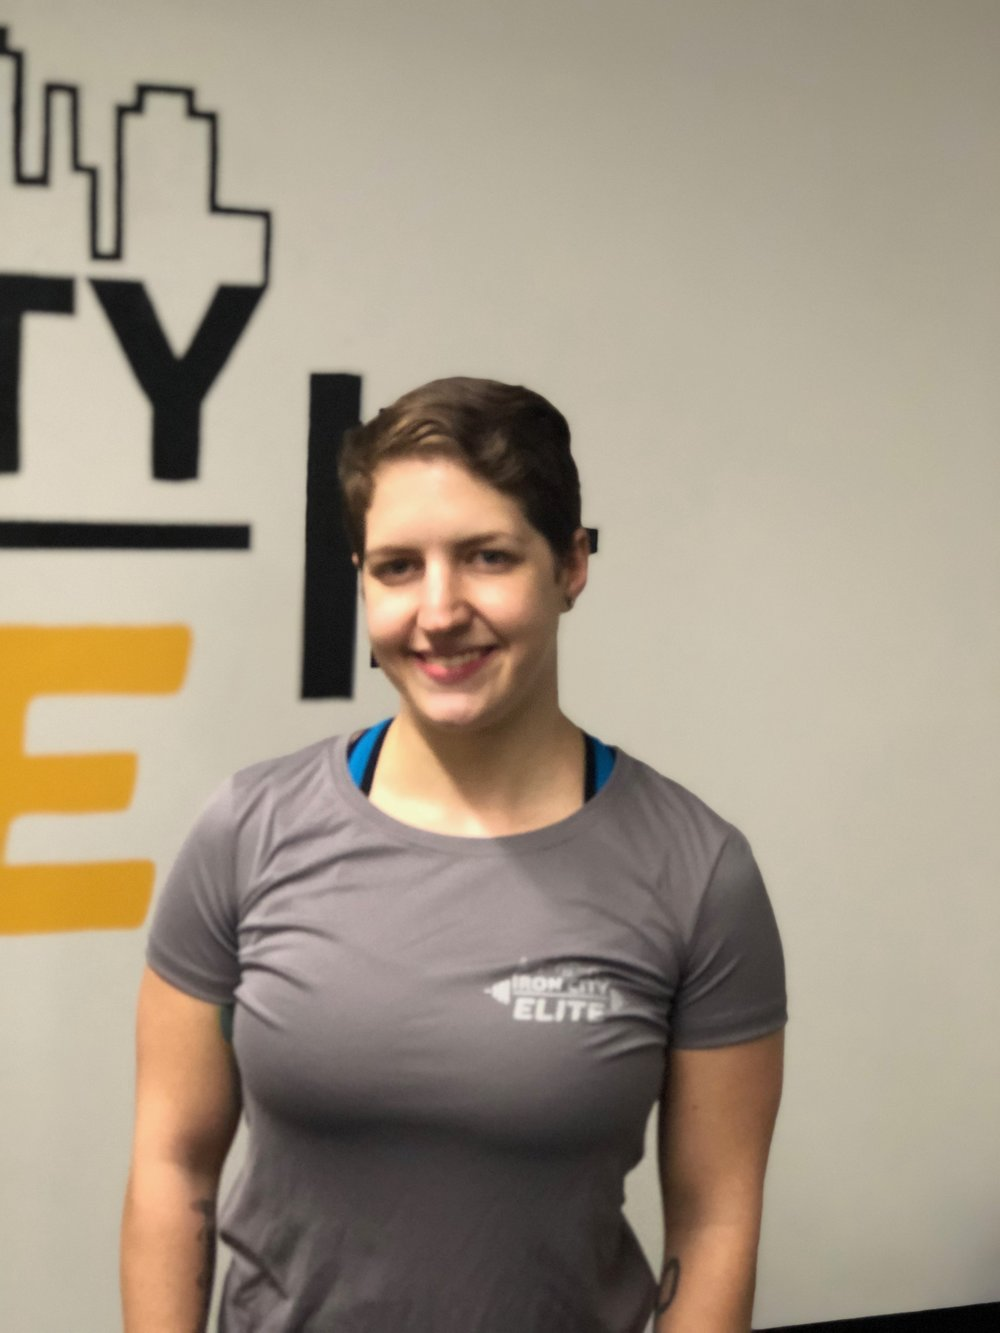 Greta Zalewski    Fitness and Performance Coach   Greta earned her Bachelor of Science in Nutrition Communication from Arizona State University in May 2017. She is a National Strength and Conditioning (NSCA) Certified Personal Trainer, and actively competes in the United States Powerlifting Federation in the raw, open division. Fitness and nutrition have...